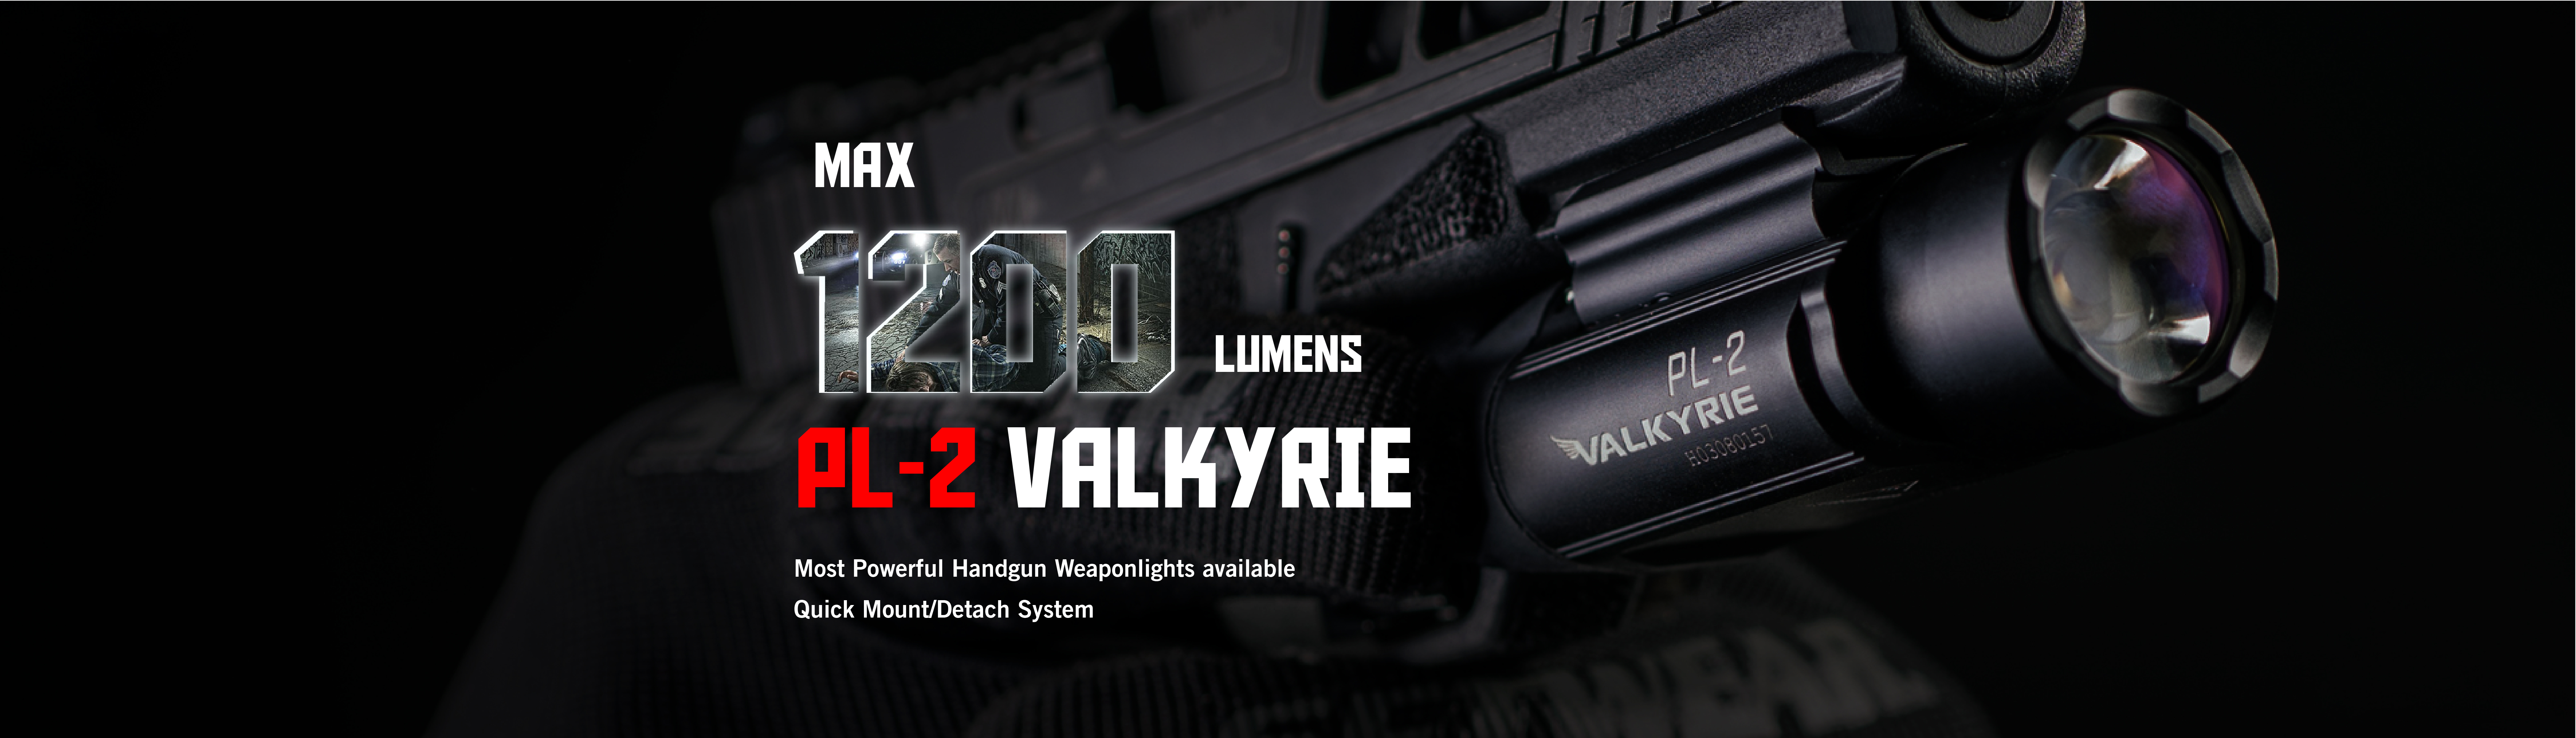 Olight PL2 Valkyrie LED weapon light 1200 Lumens